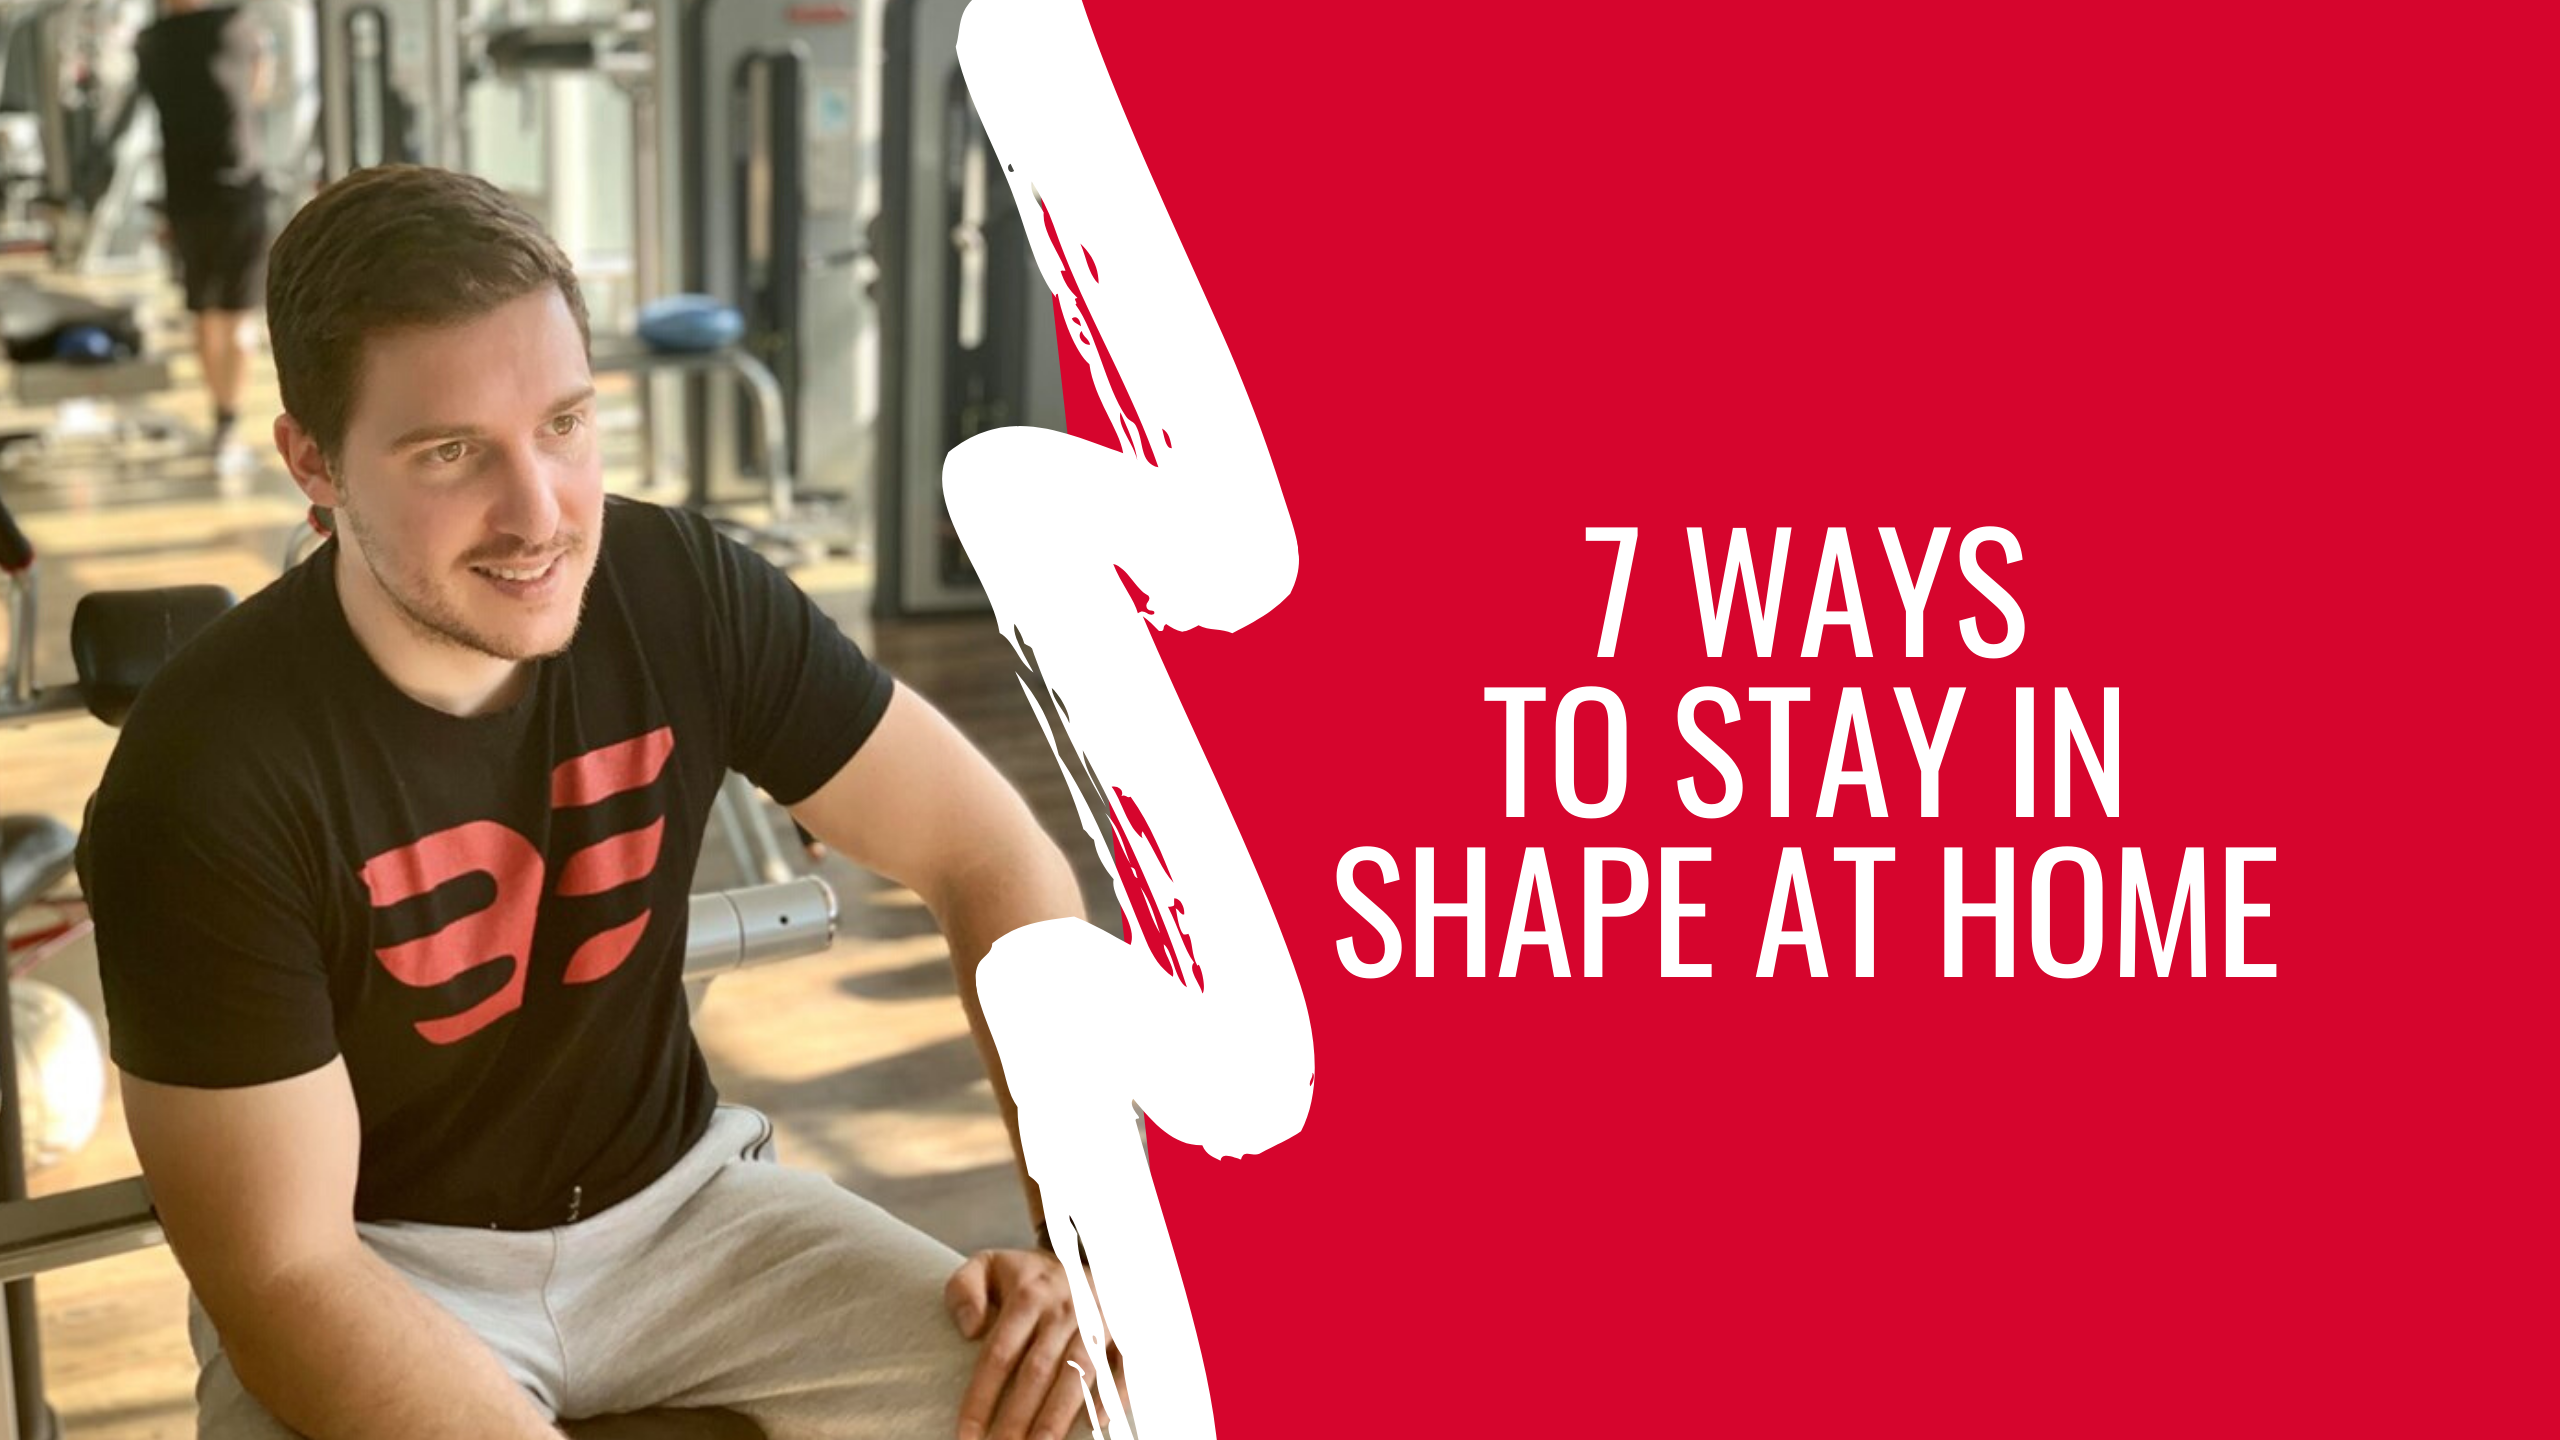 7 ways to stay in shape at home- featured